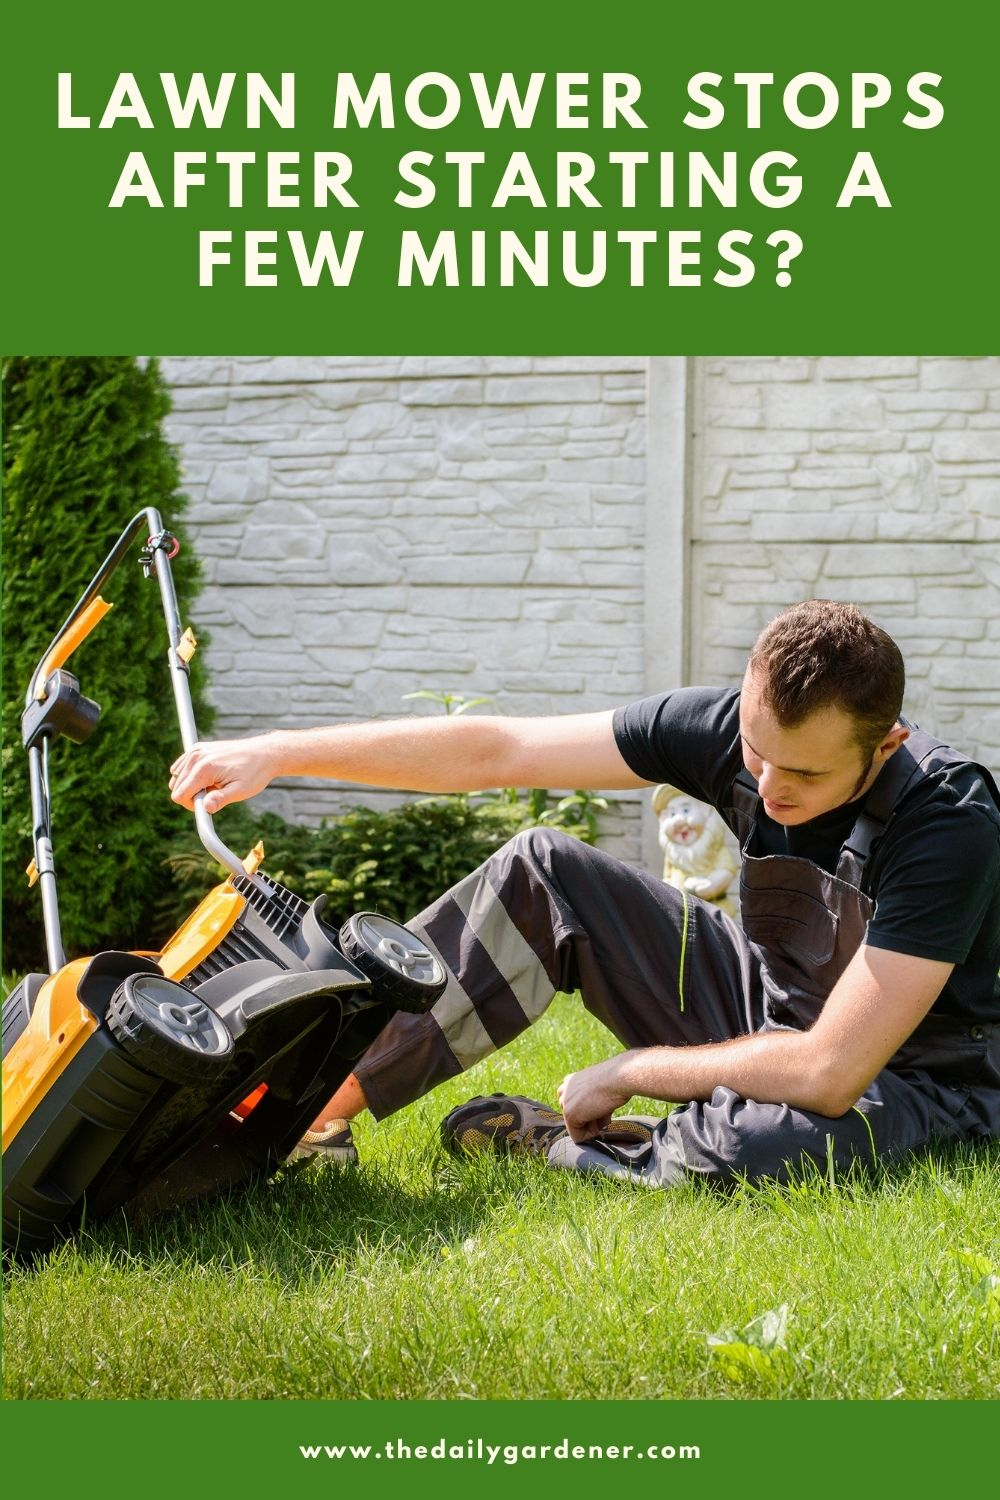 Lawn Mower Stops After Starting a Few Minutes 2